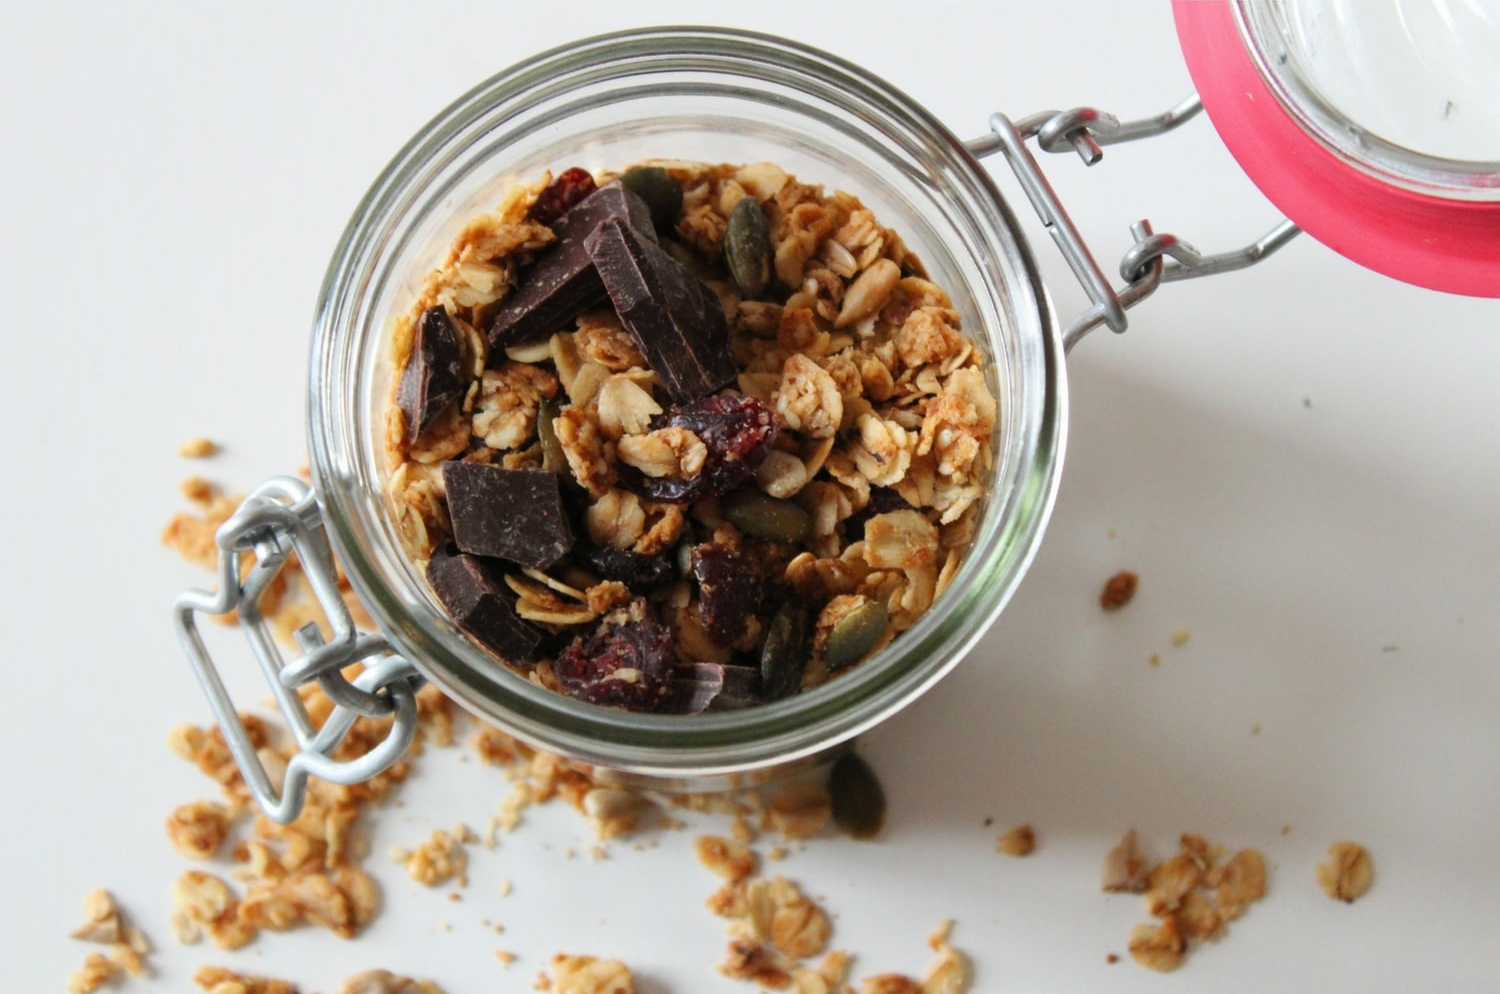 Homemade Chocolate Granola  - This Granola (200g) has been made with the best ingredients : Organic Jumbo Oats, Organic Milk Chocolate,Organic Pumpkin Seeds, Organic Sunflower Oil, Cinnamon, Himalayan Rose Pink SaltMade by Hazelnut